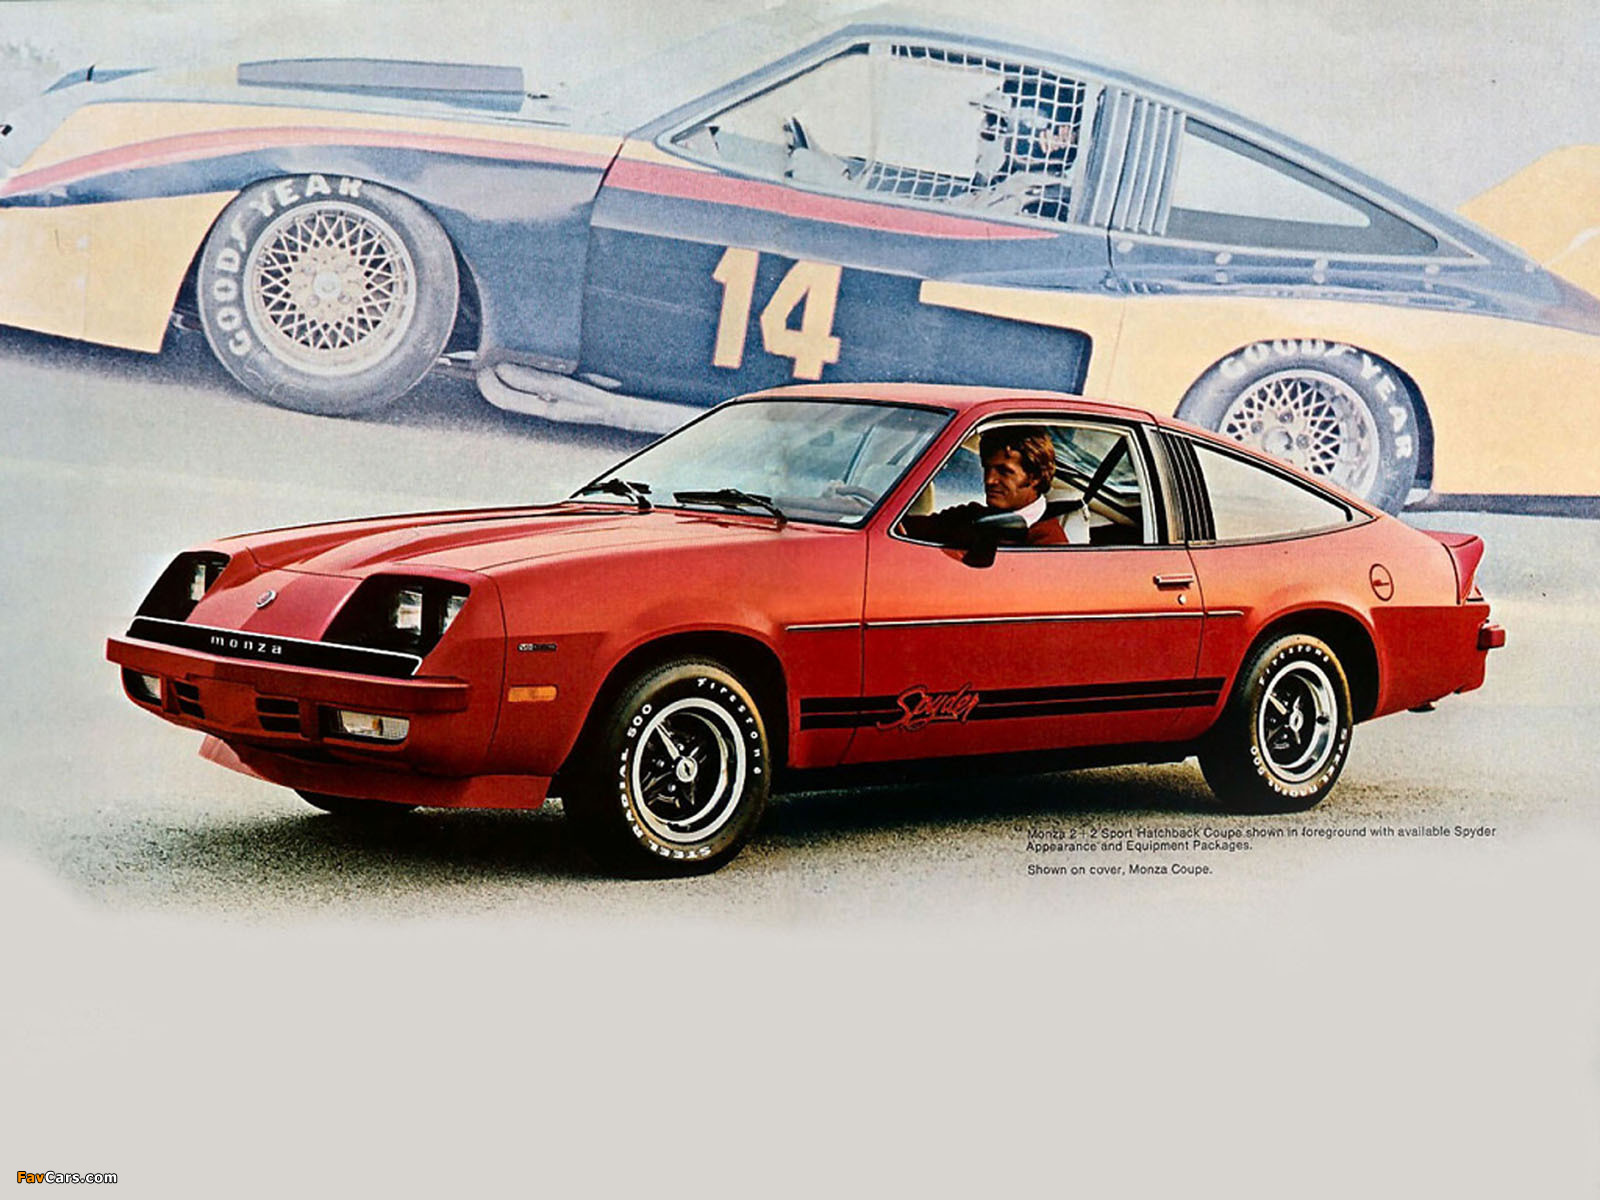 What Was So Special About The 1975 Chevrolet Monza Archive Mx 5 Wiring Diagram For 1976 Chevy Fuel Pump Miata Forum